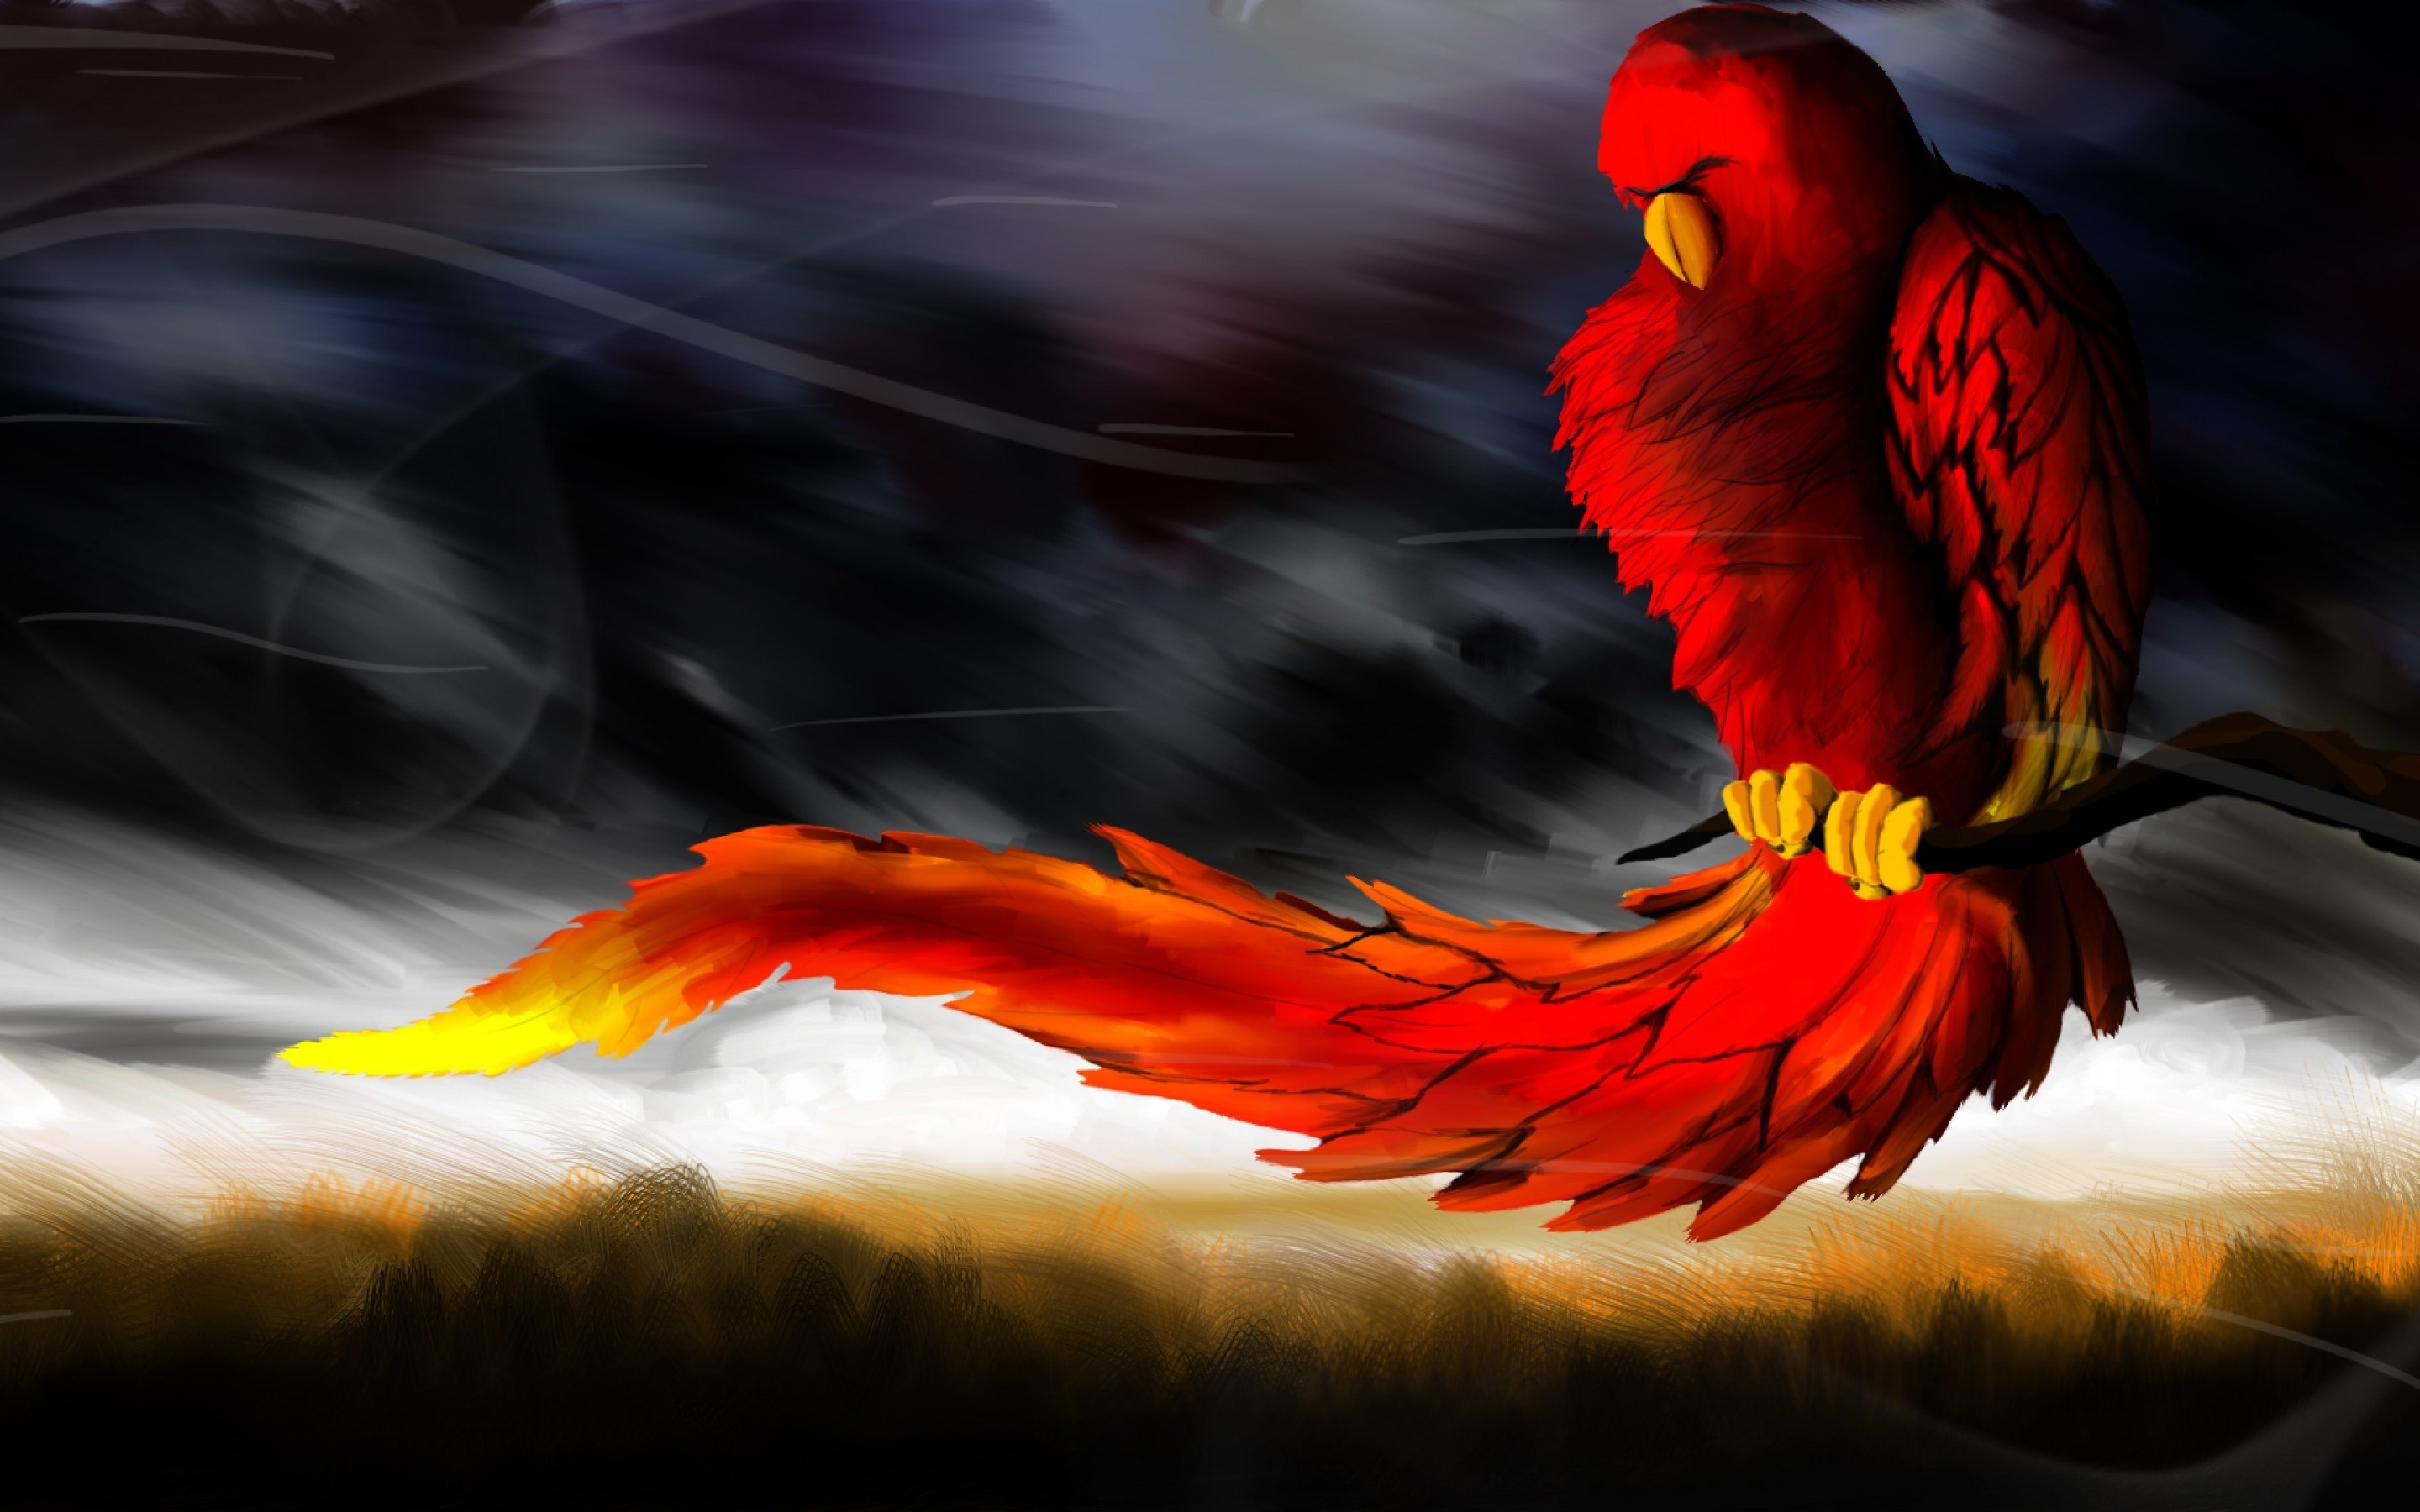 Red bird clutched a branch in the wind wallpapers and images 2880x1800